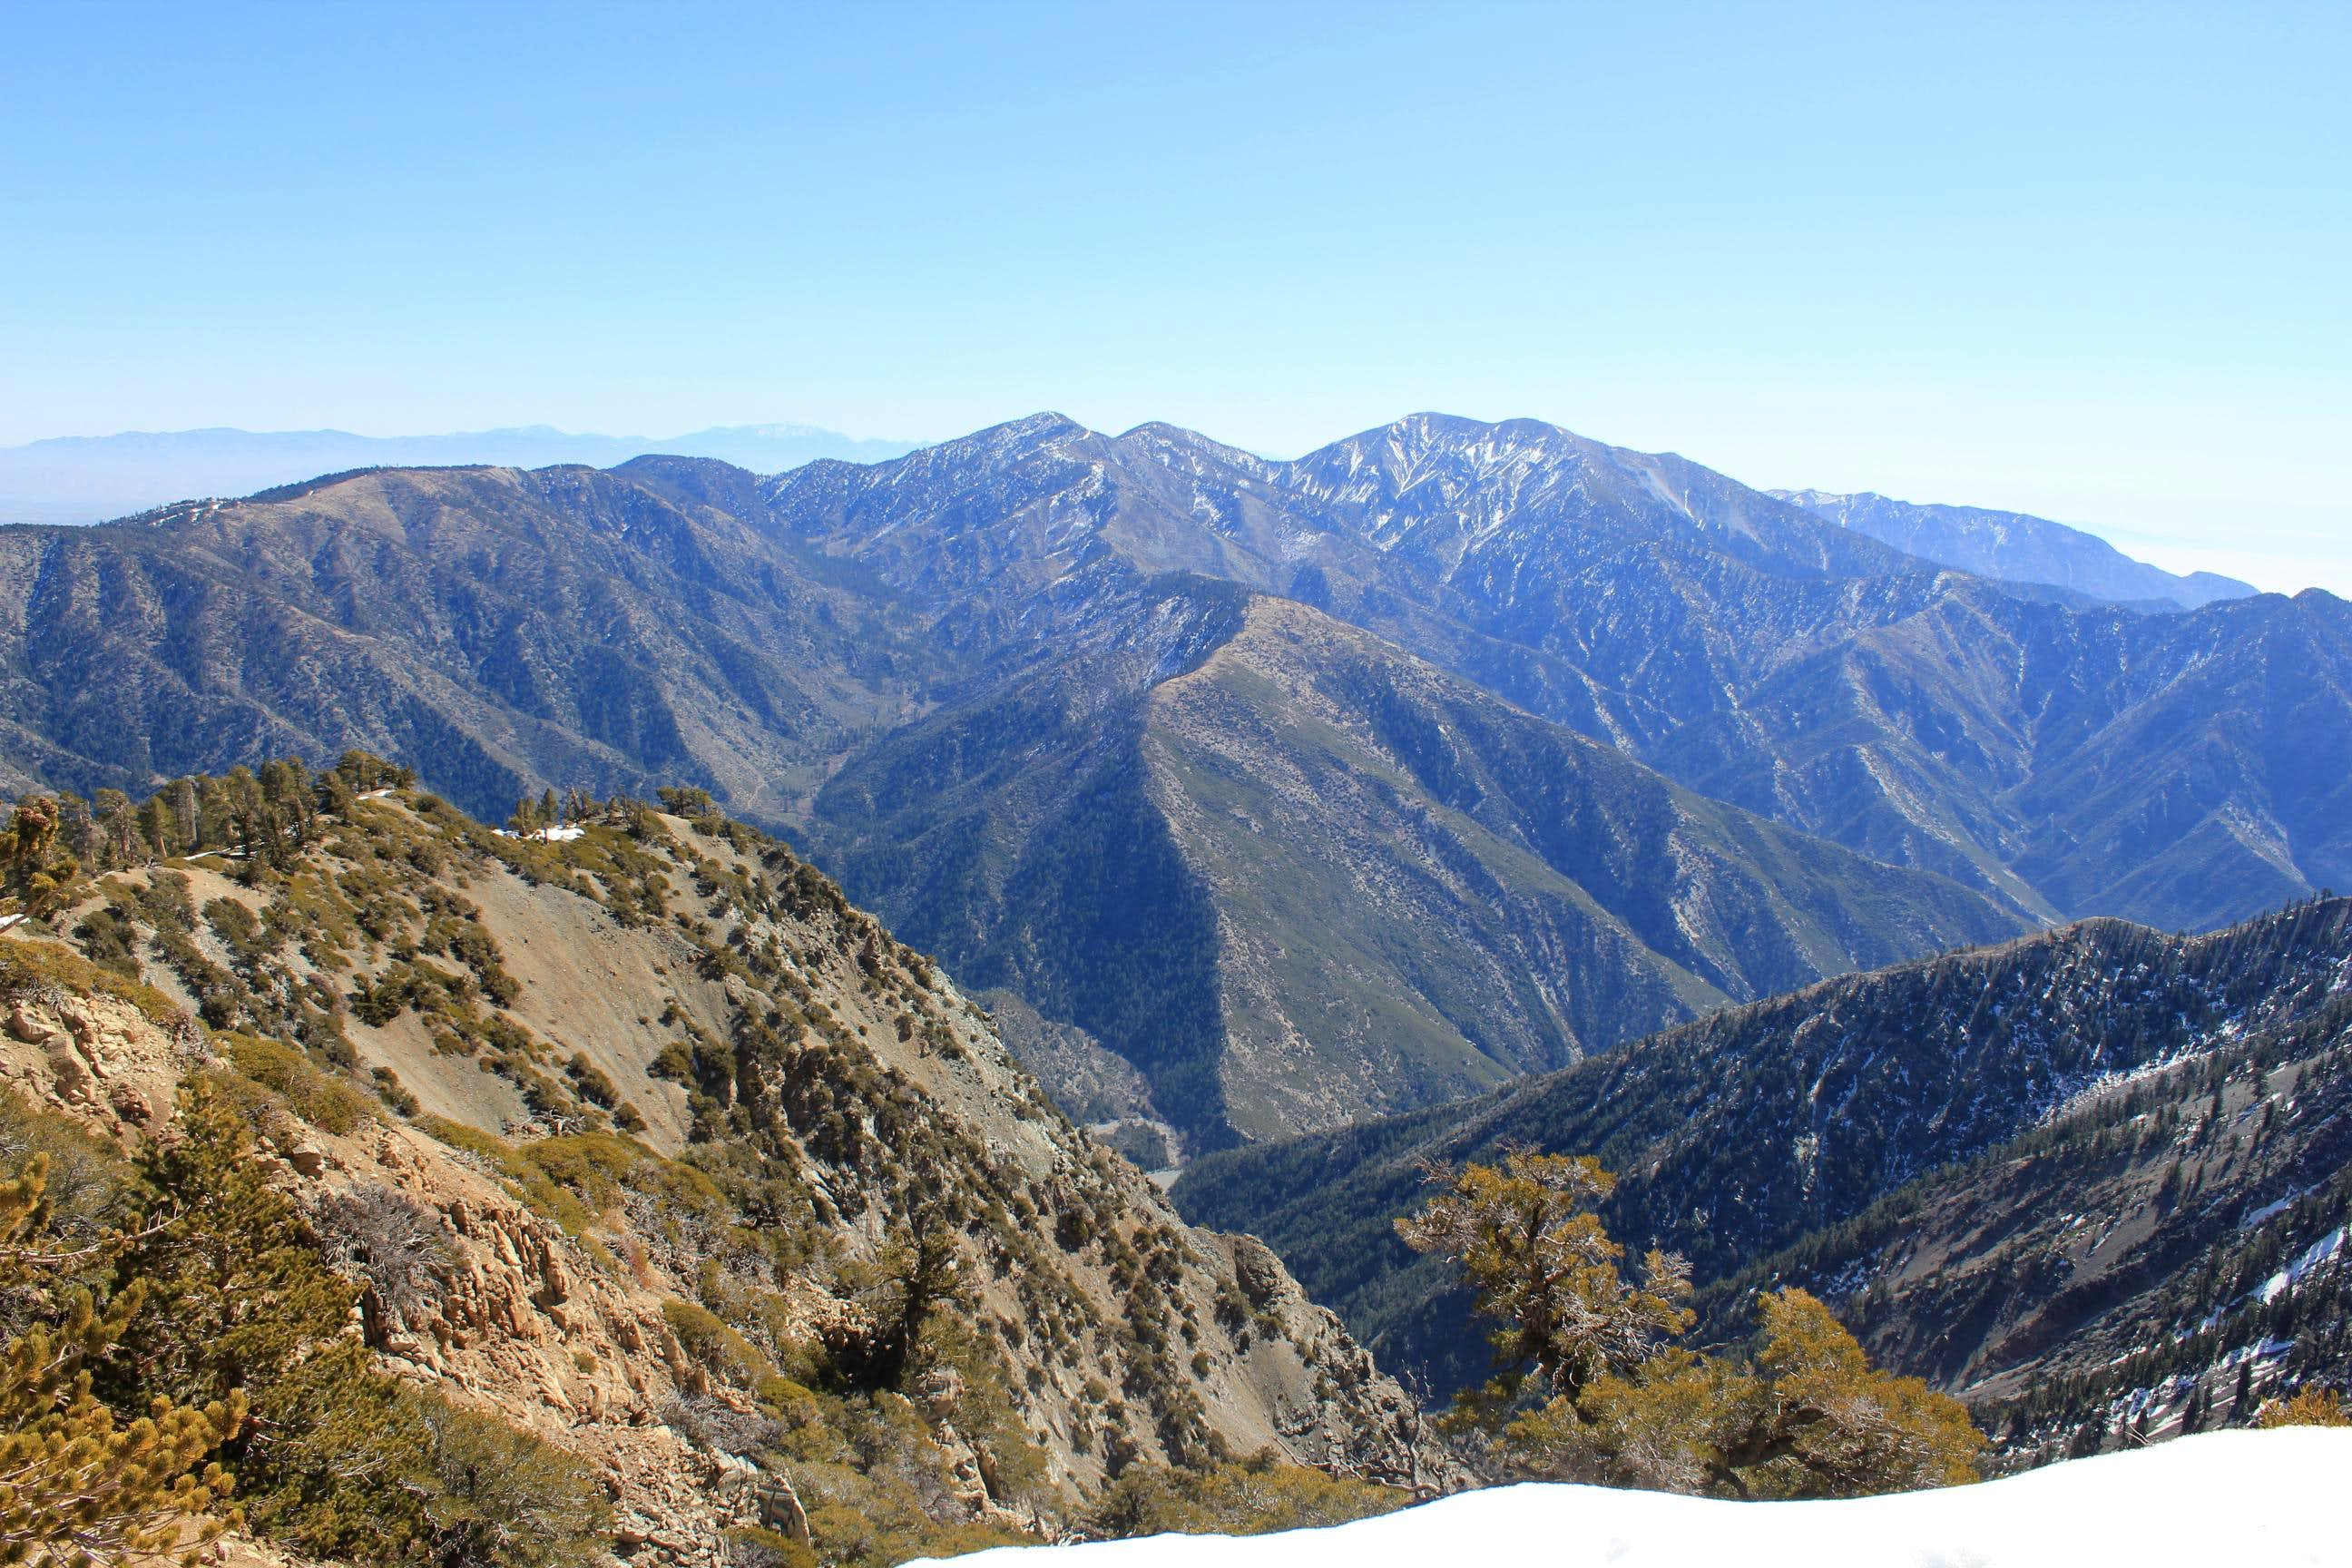 Iron Mountain to Mt. Baldy via San Antonio Ridge